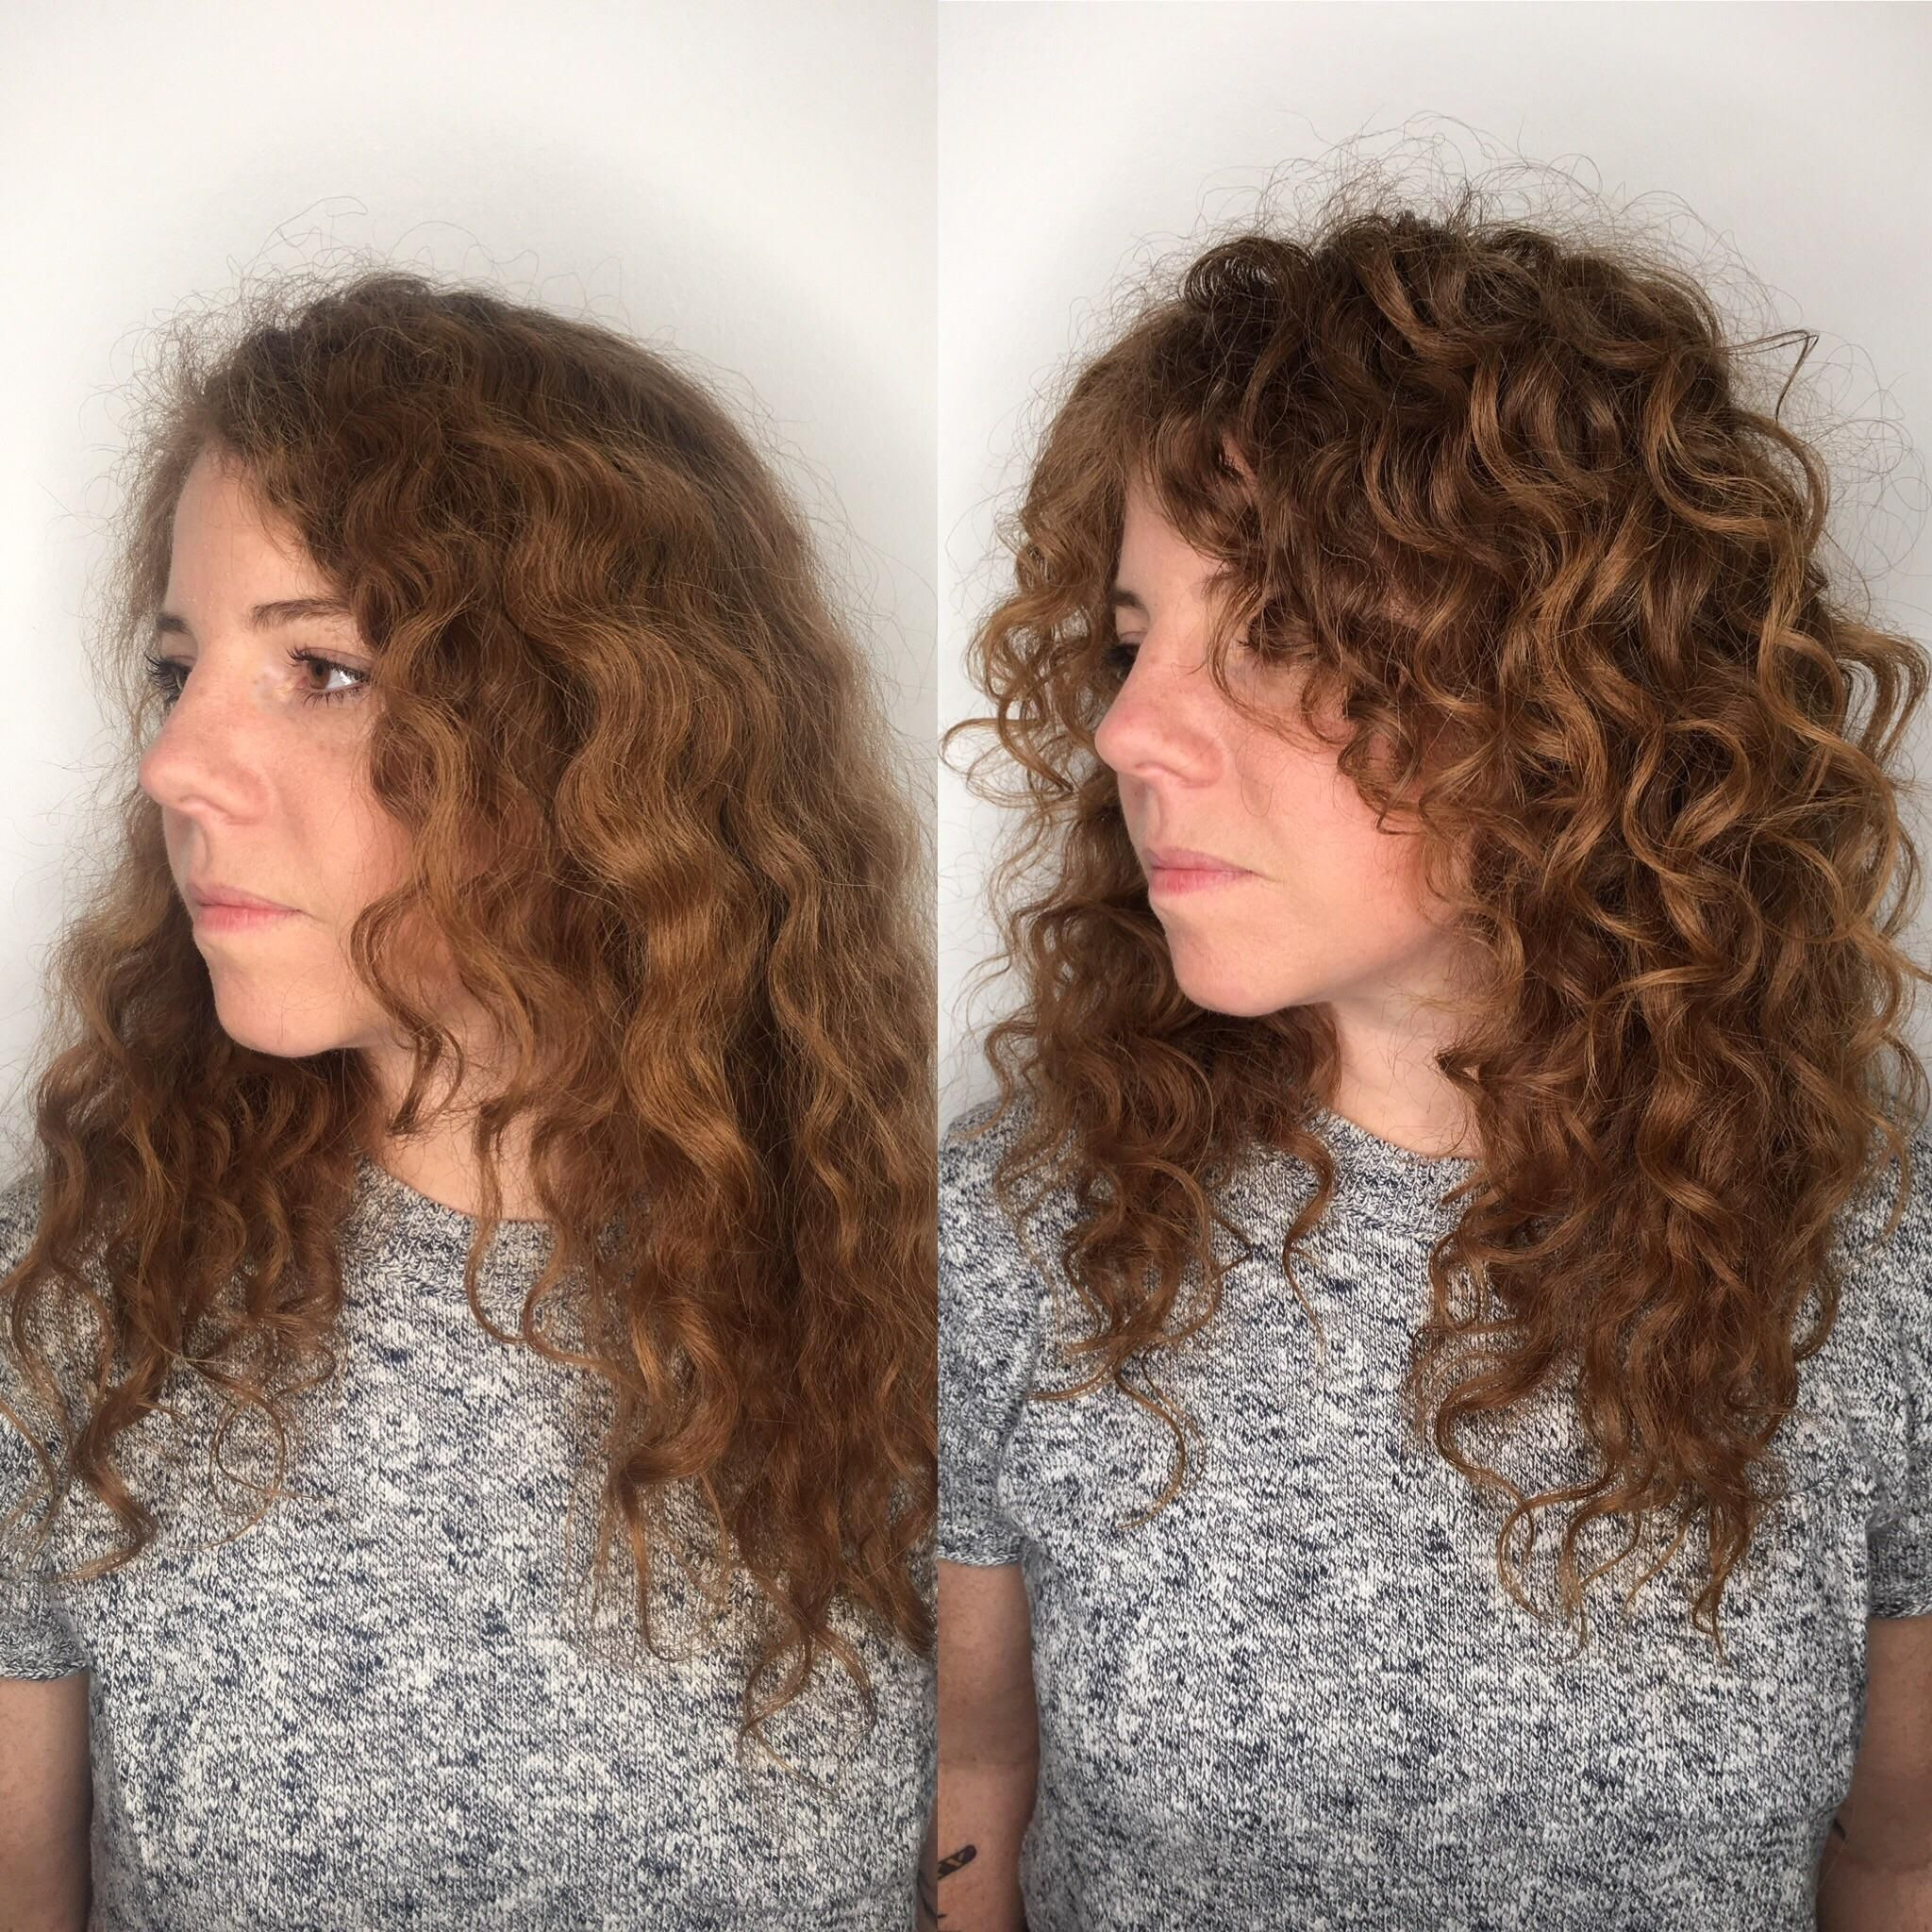 Long Curly Shag Hairstyle Curly Hair Styles Long Curly Haircuts Long Hair Styles